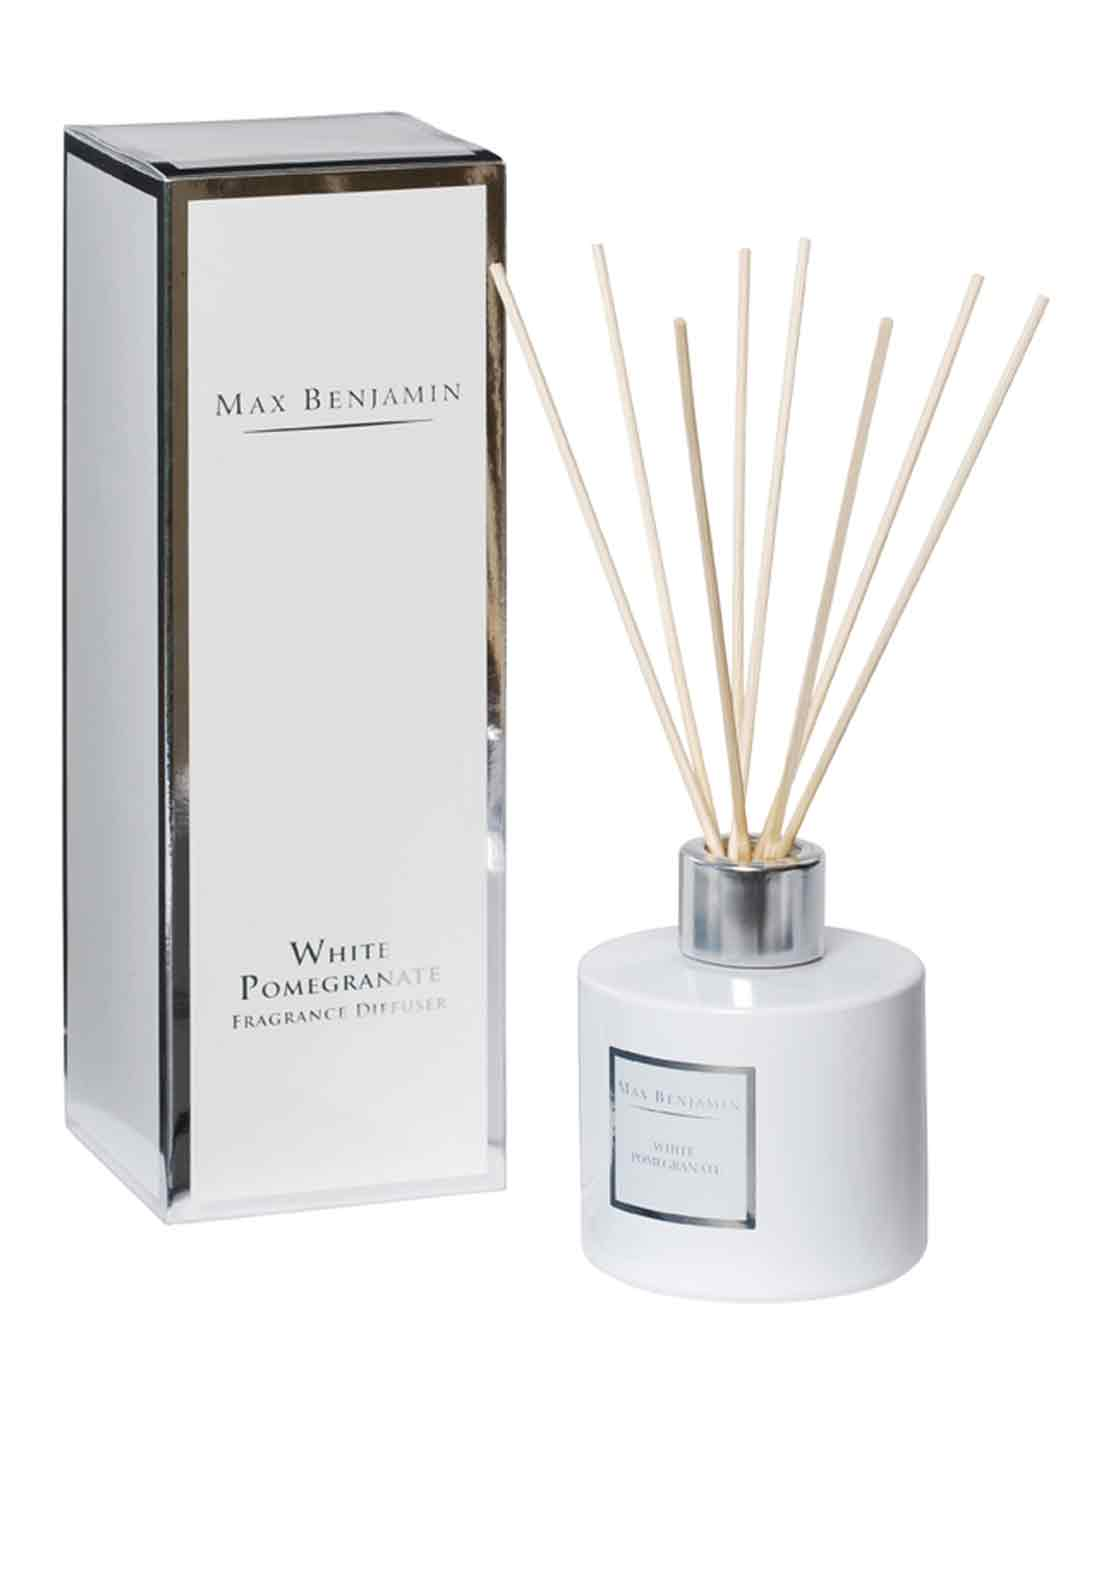 Max Benjamin White Pomegranate Fragrance Diffuser